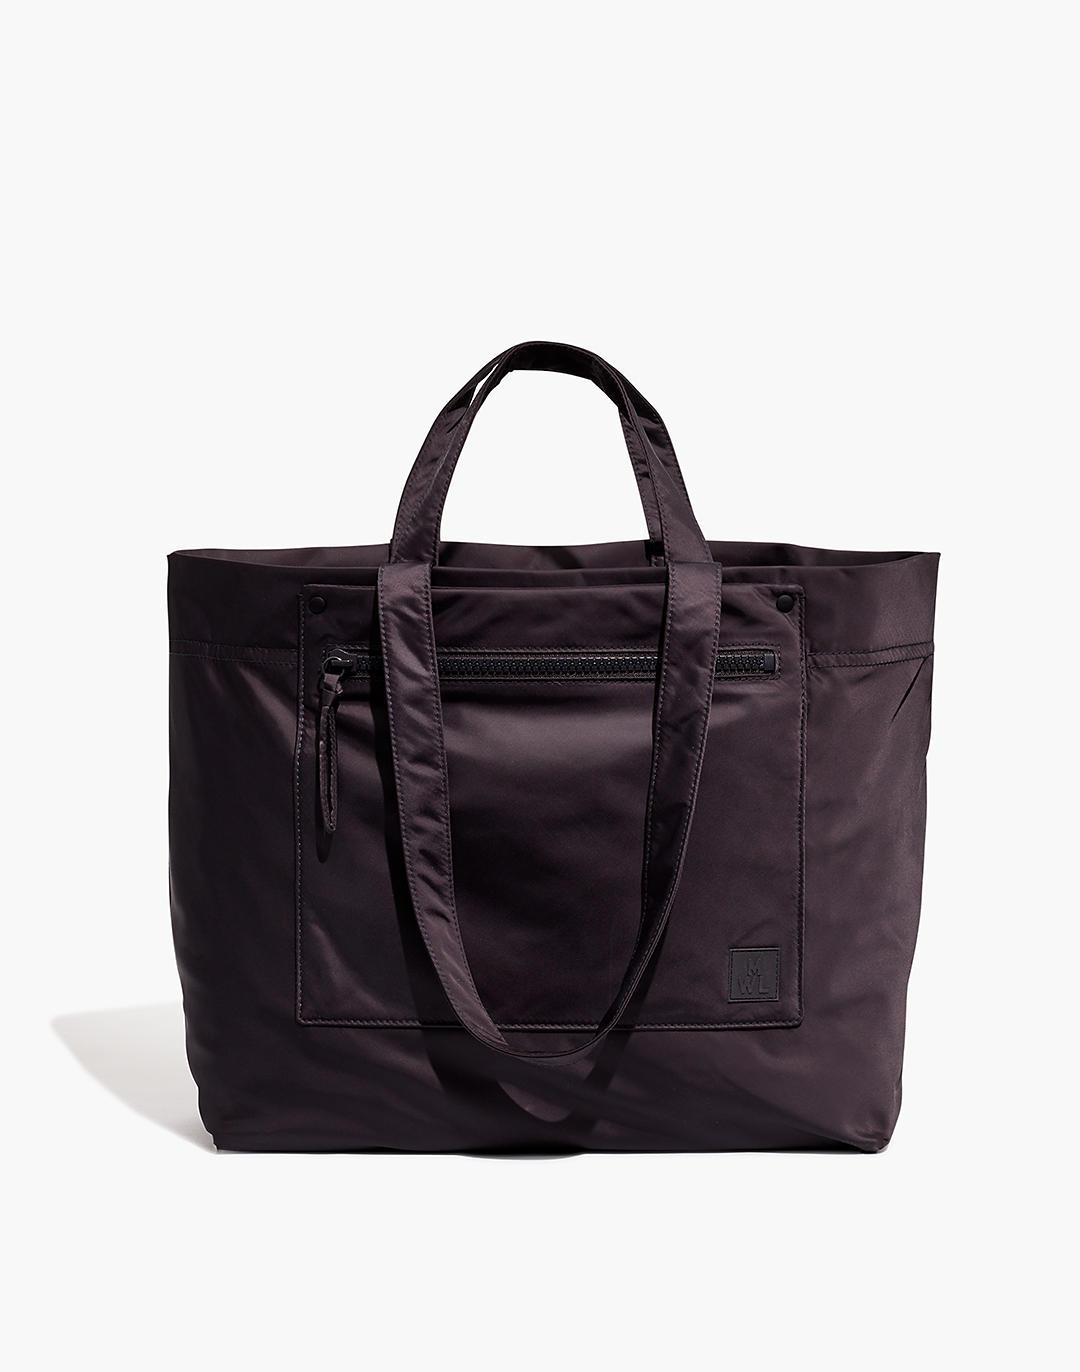 The (Re)sourced Tote Bag